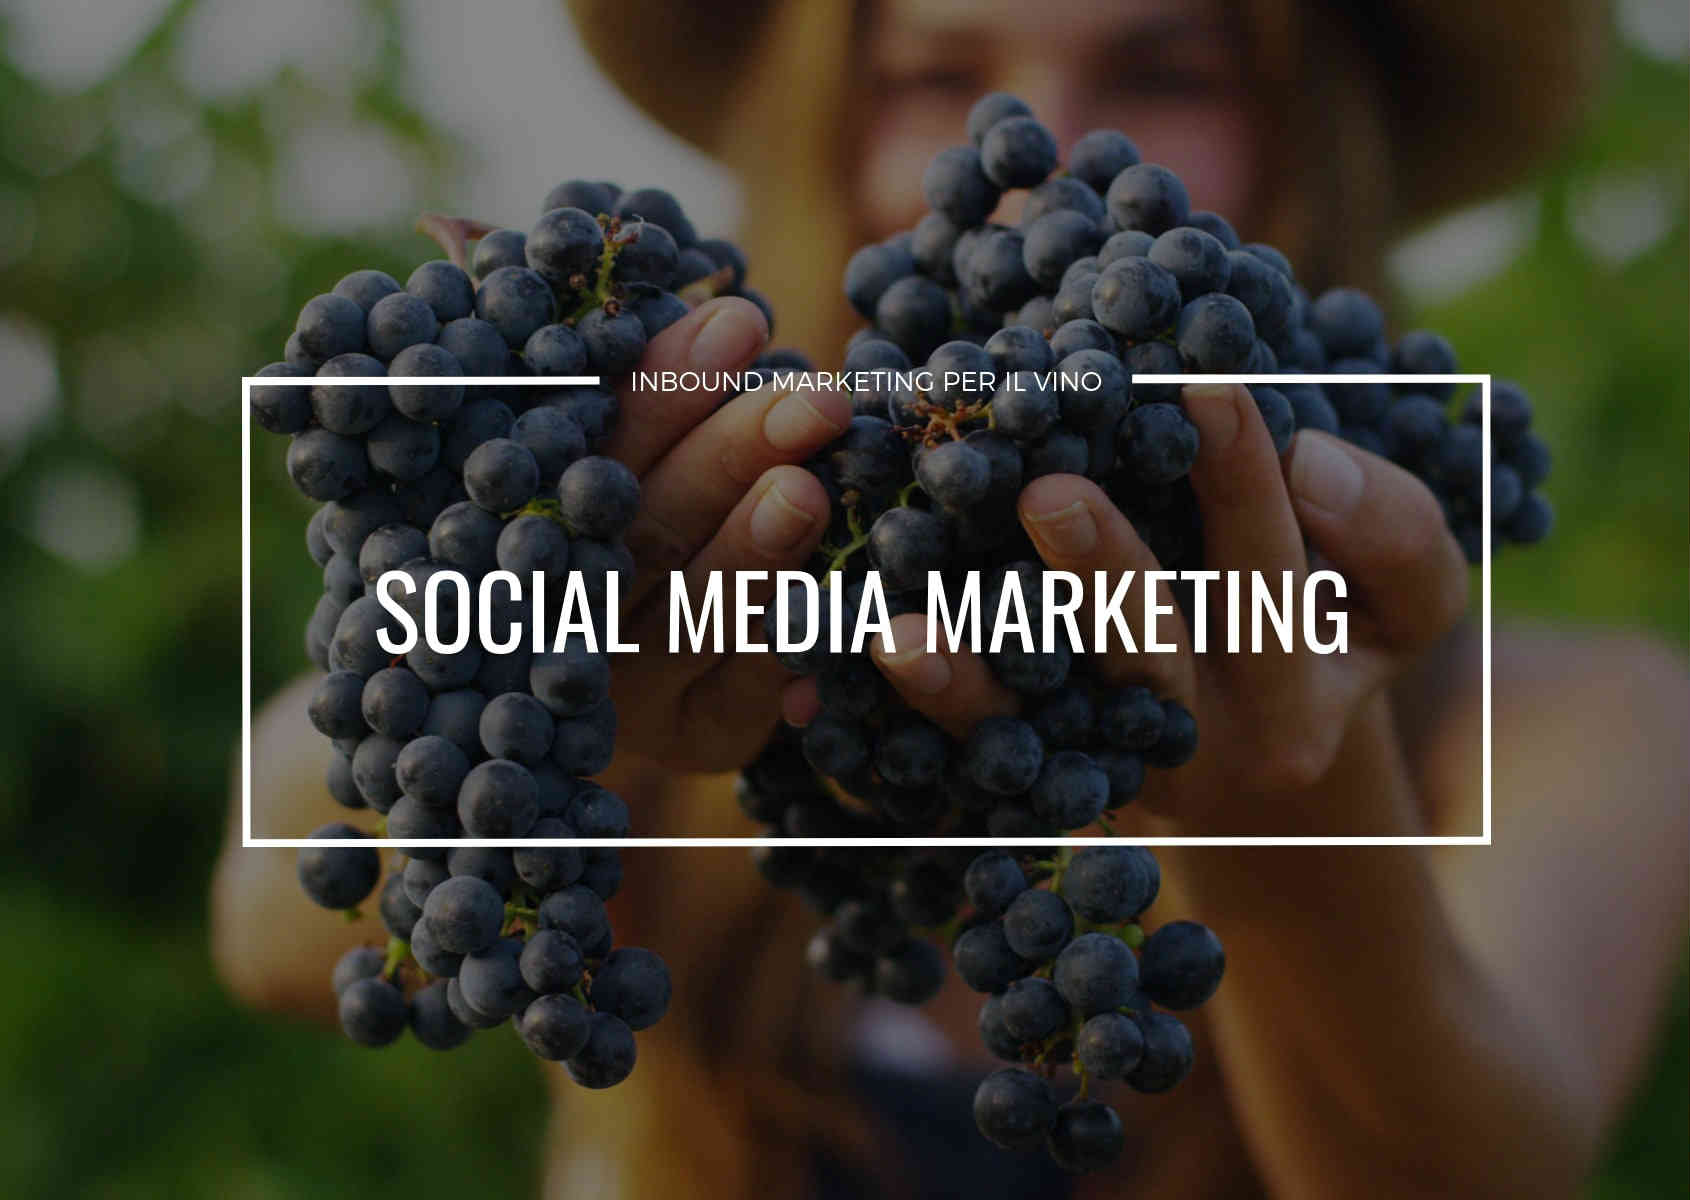 la migliore strategia di social media marketing per una casa vinicola